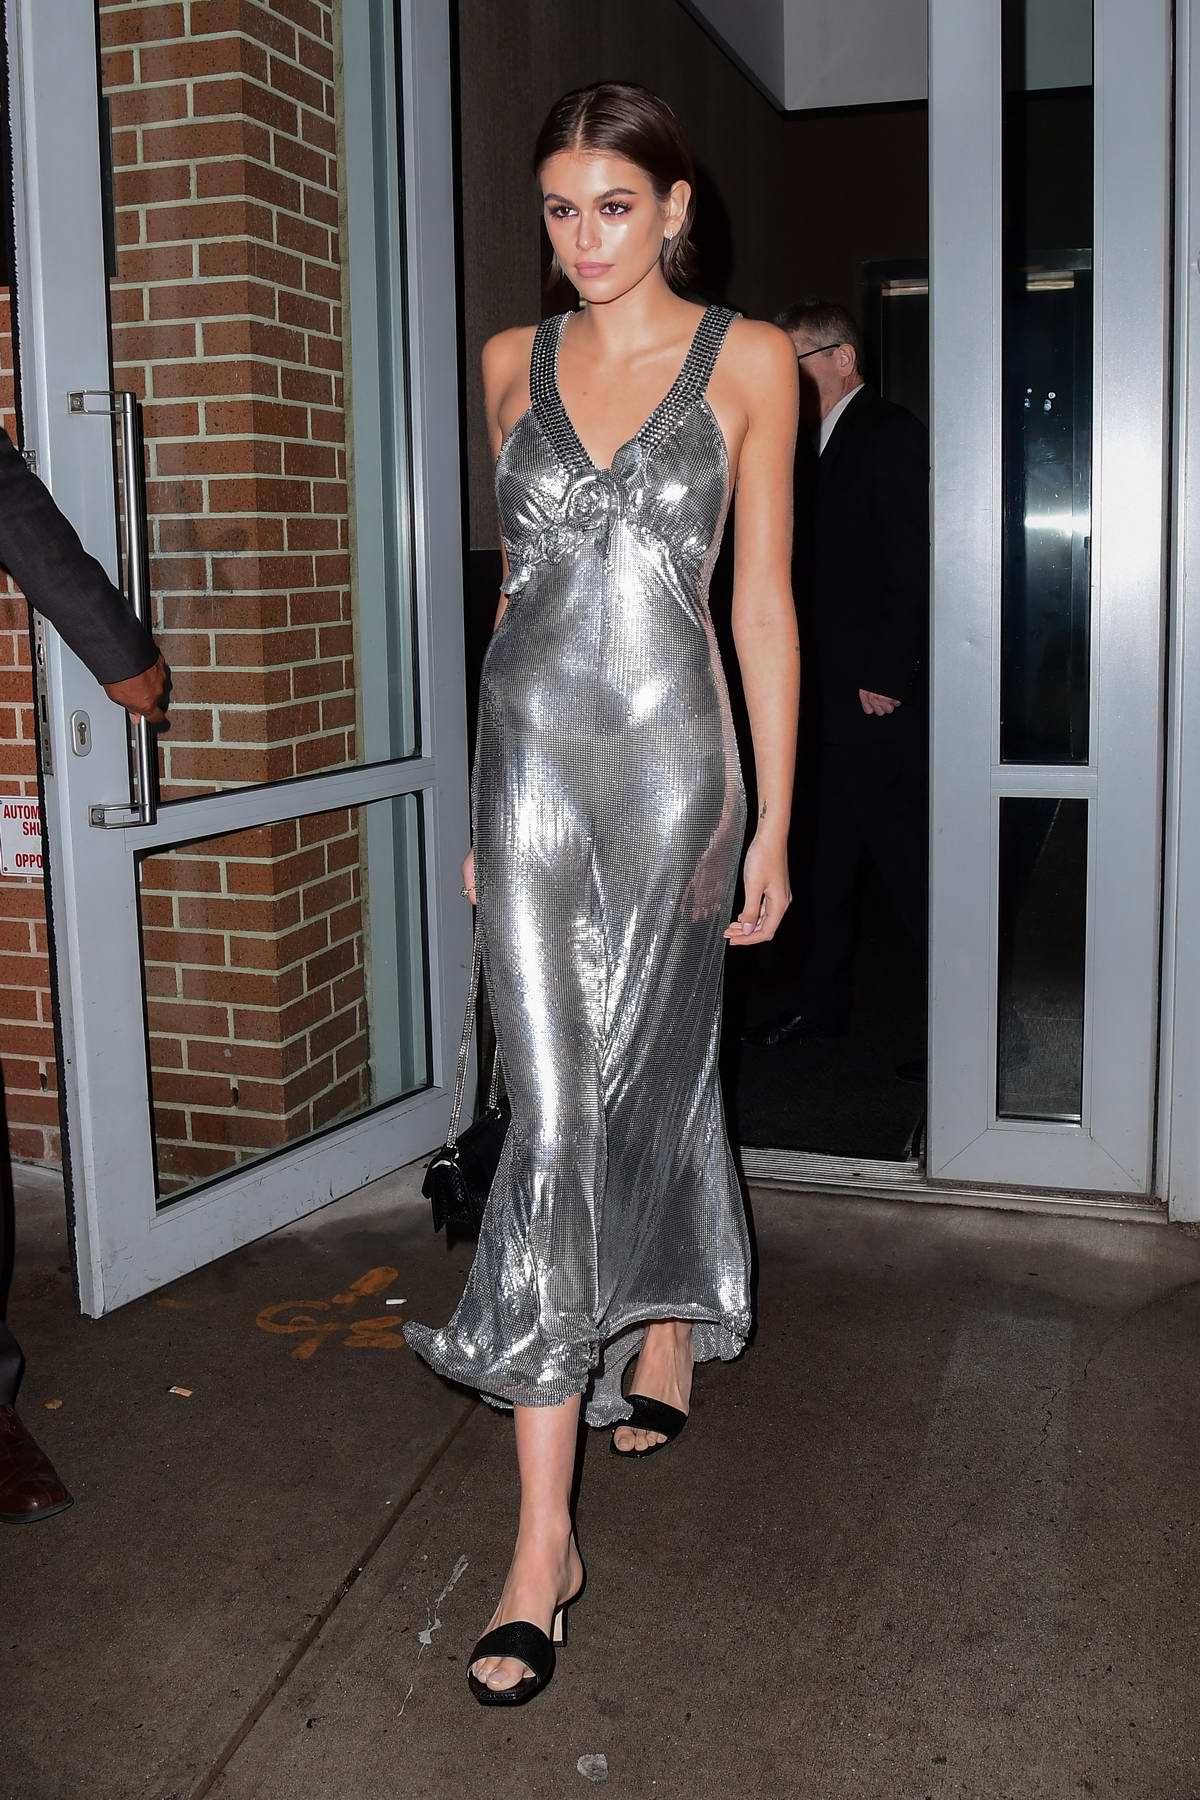 Kaia Gerber looks striking in a silver dress as she heads to Jimmy Choo x Kaia party in New York City